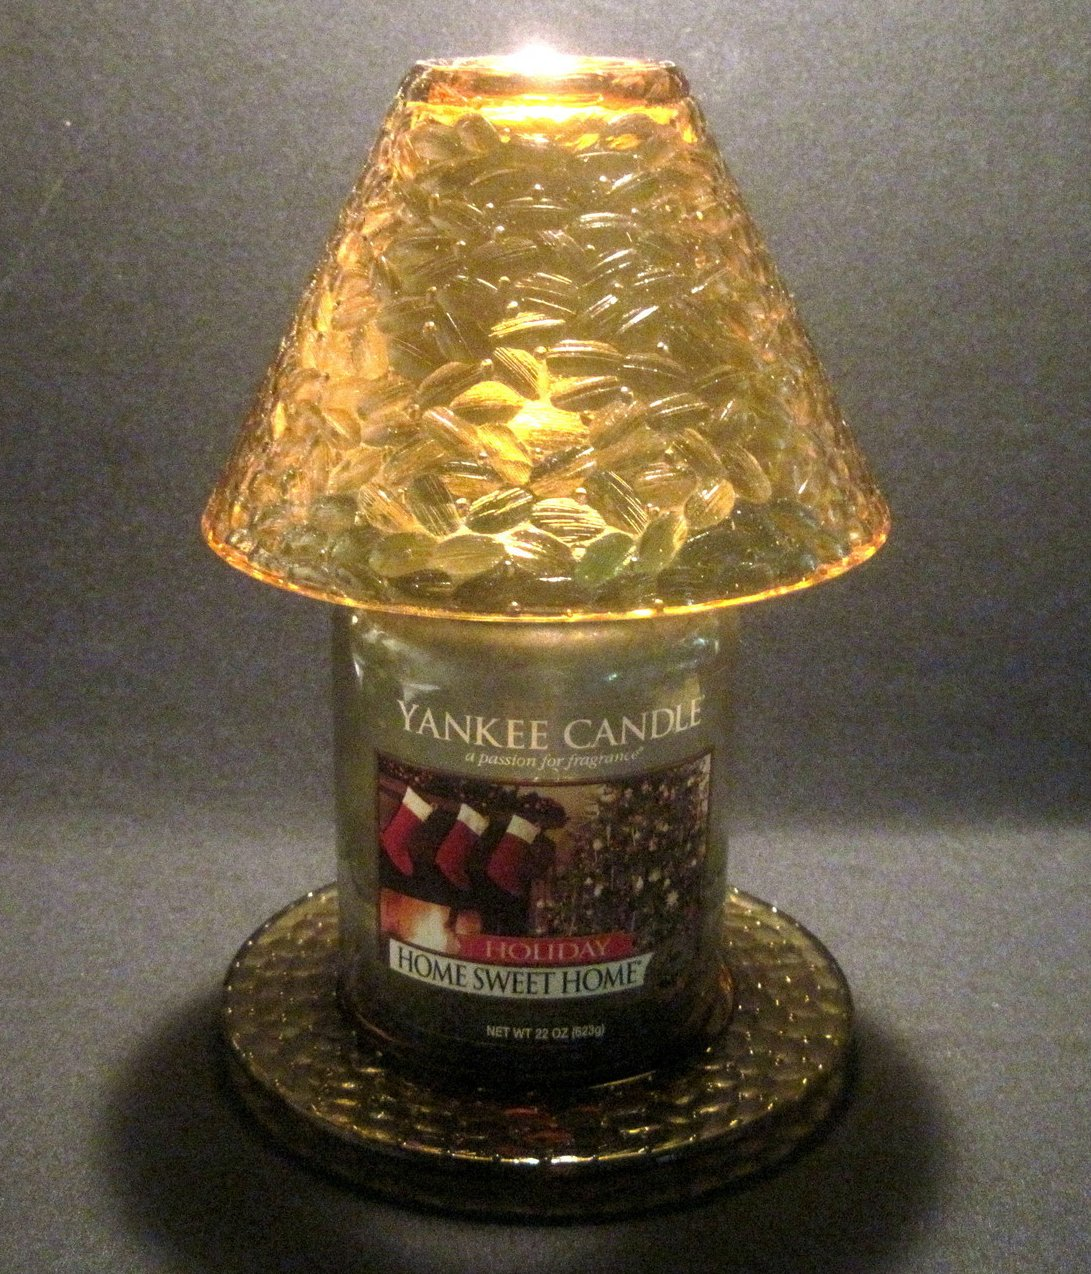 Amber Teardrop Candle Shade And Plate Set By Yankee Candle OOS